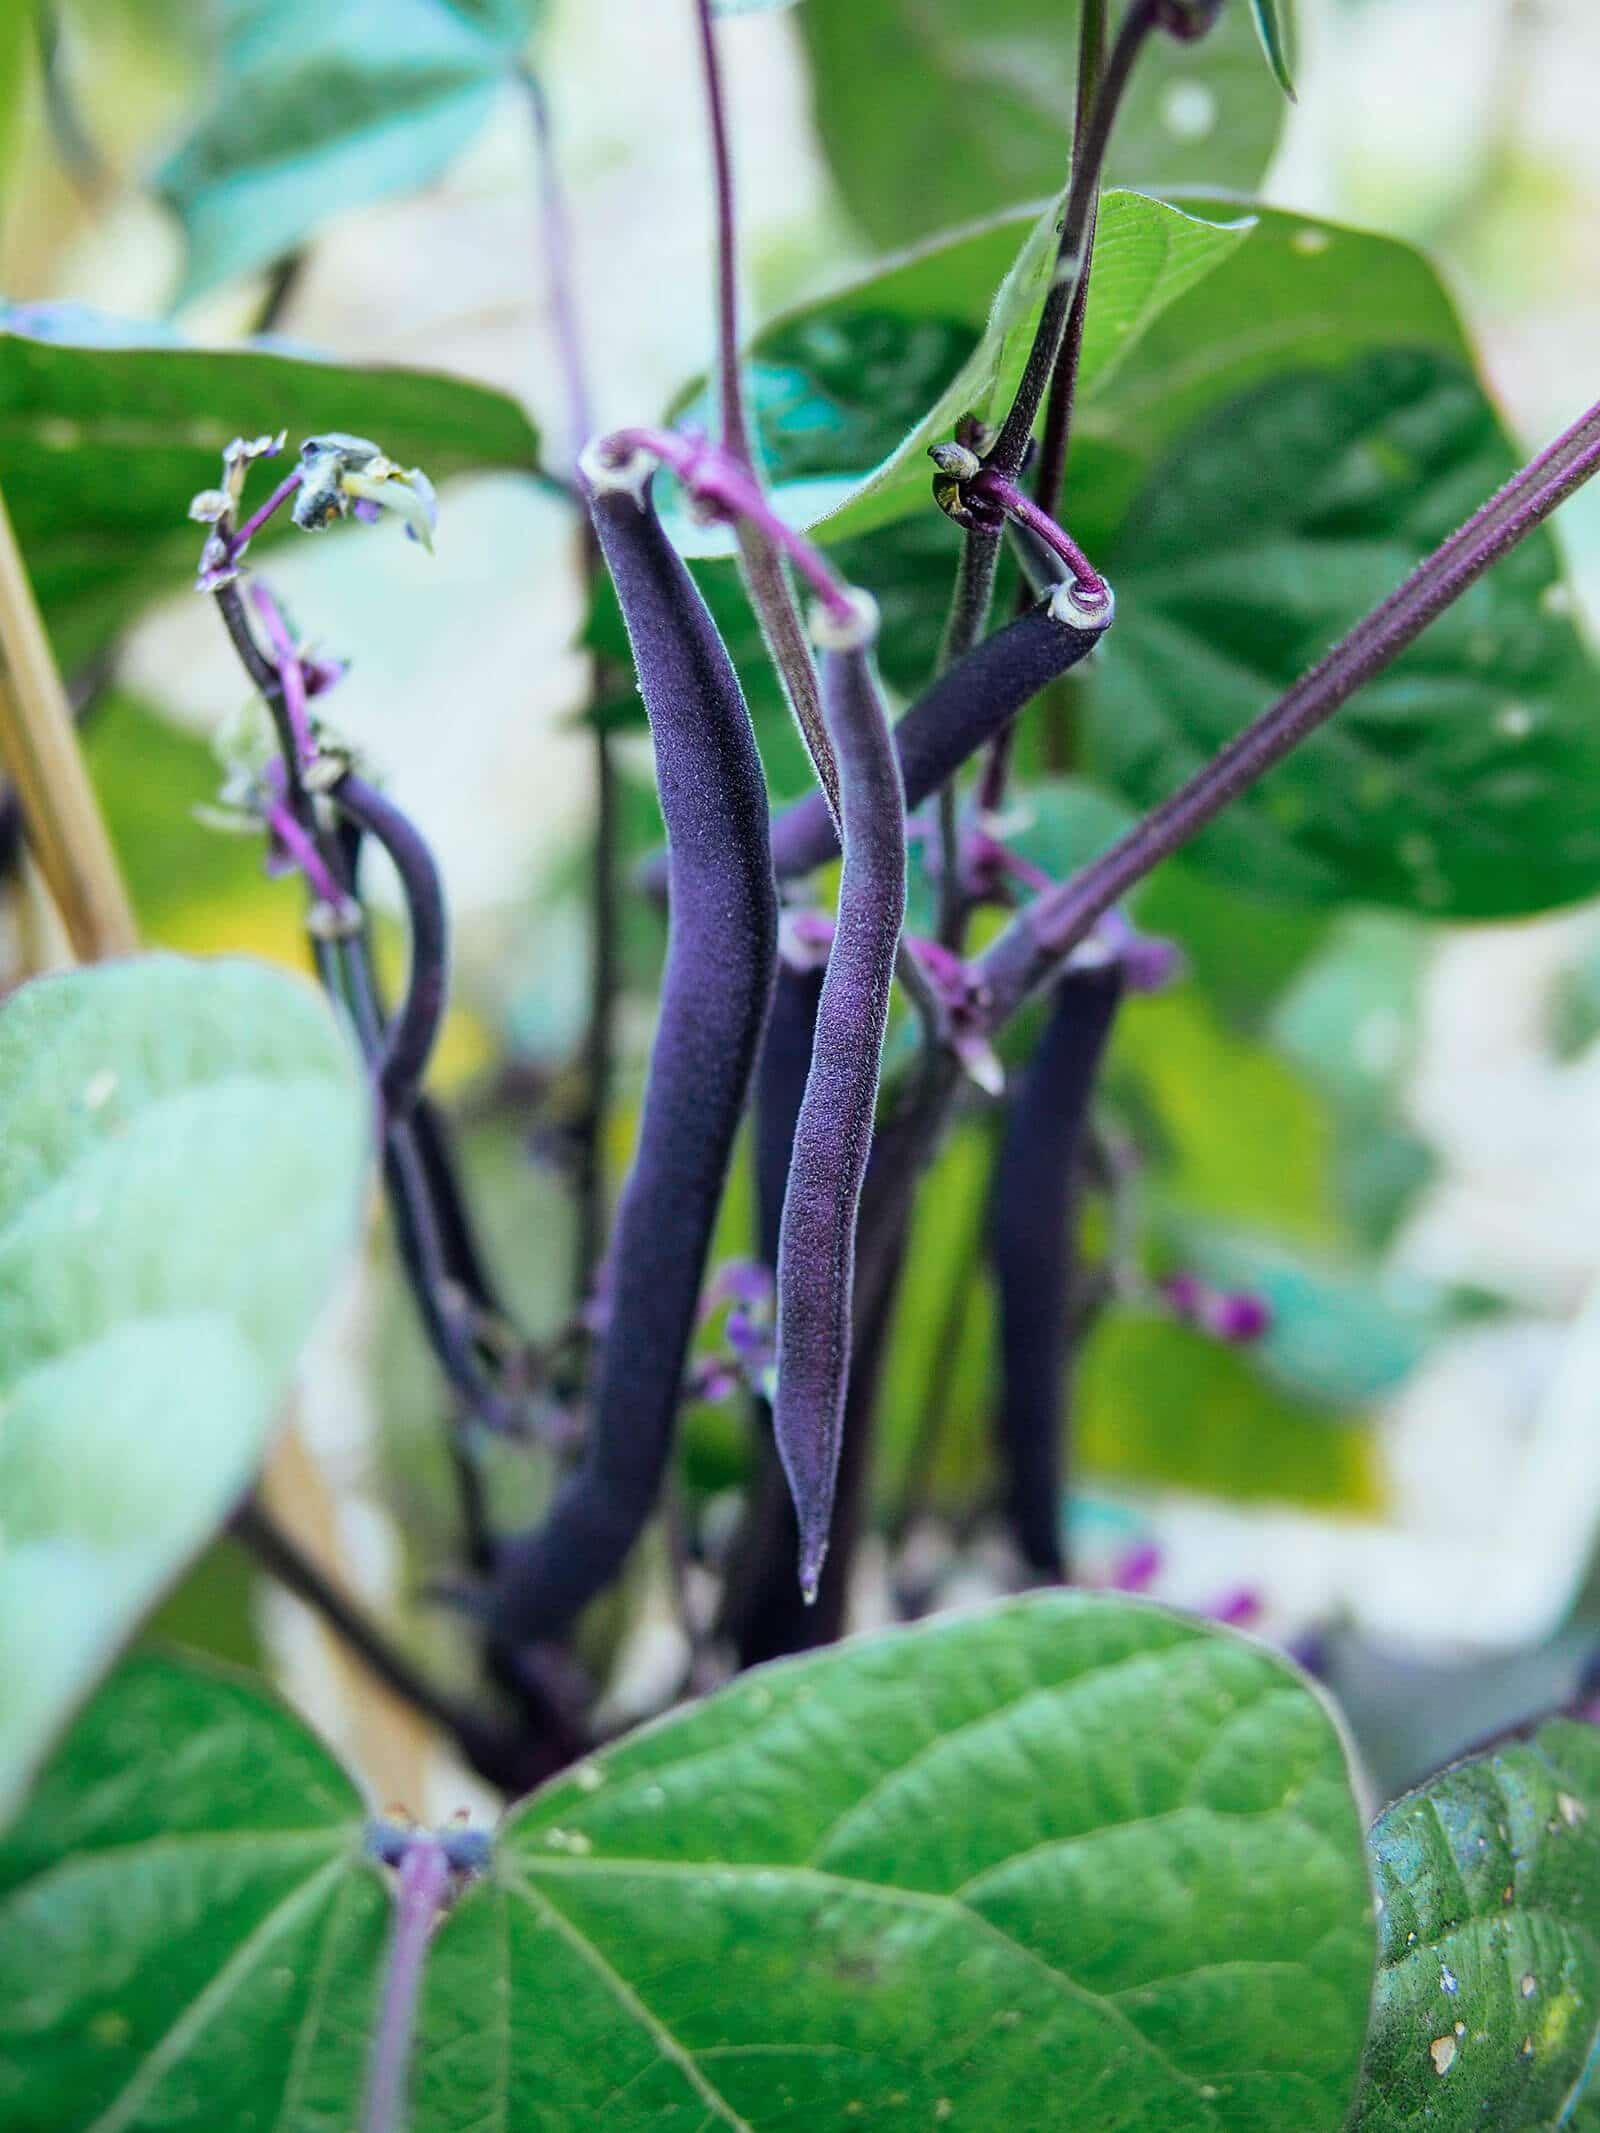 Cluster of Royal Burgundy bush beans surrounded by green leaves